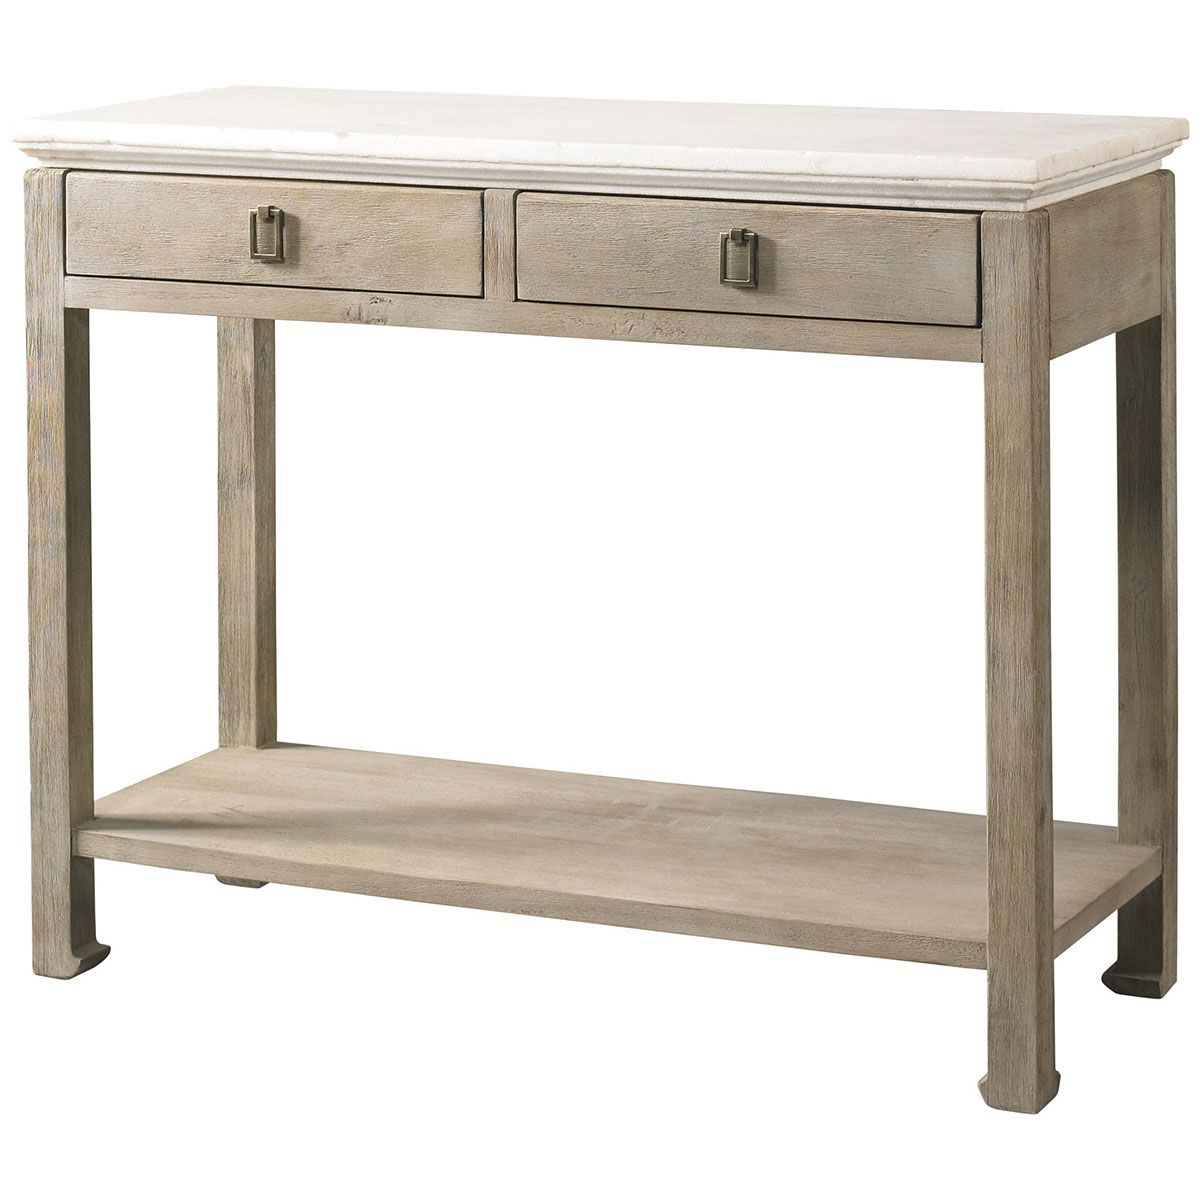 Lillian August Camille Console La96330 01 | Lillian August Regarding Ventana Display Console Tables (View 14 of 20)